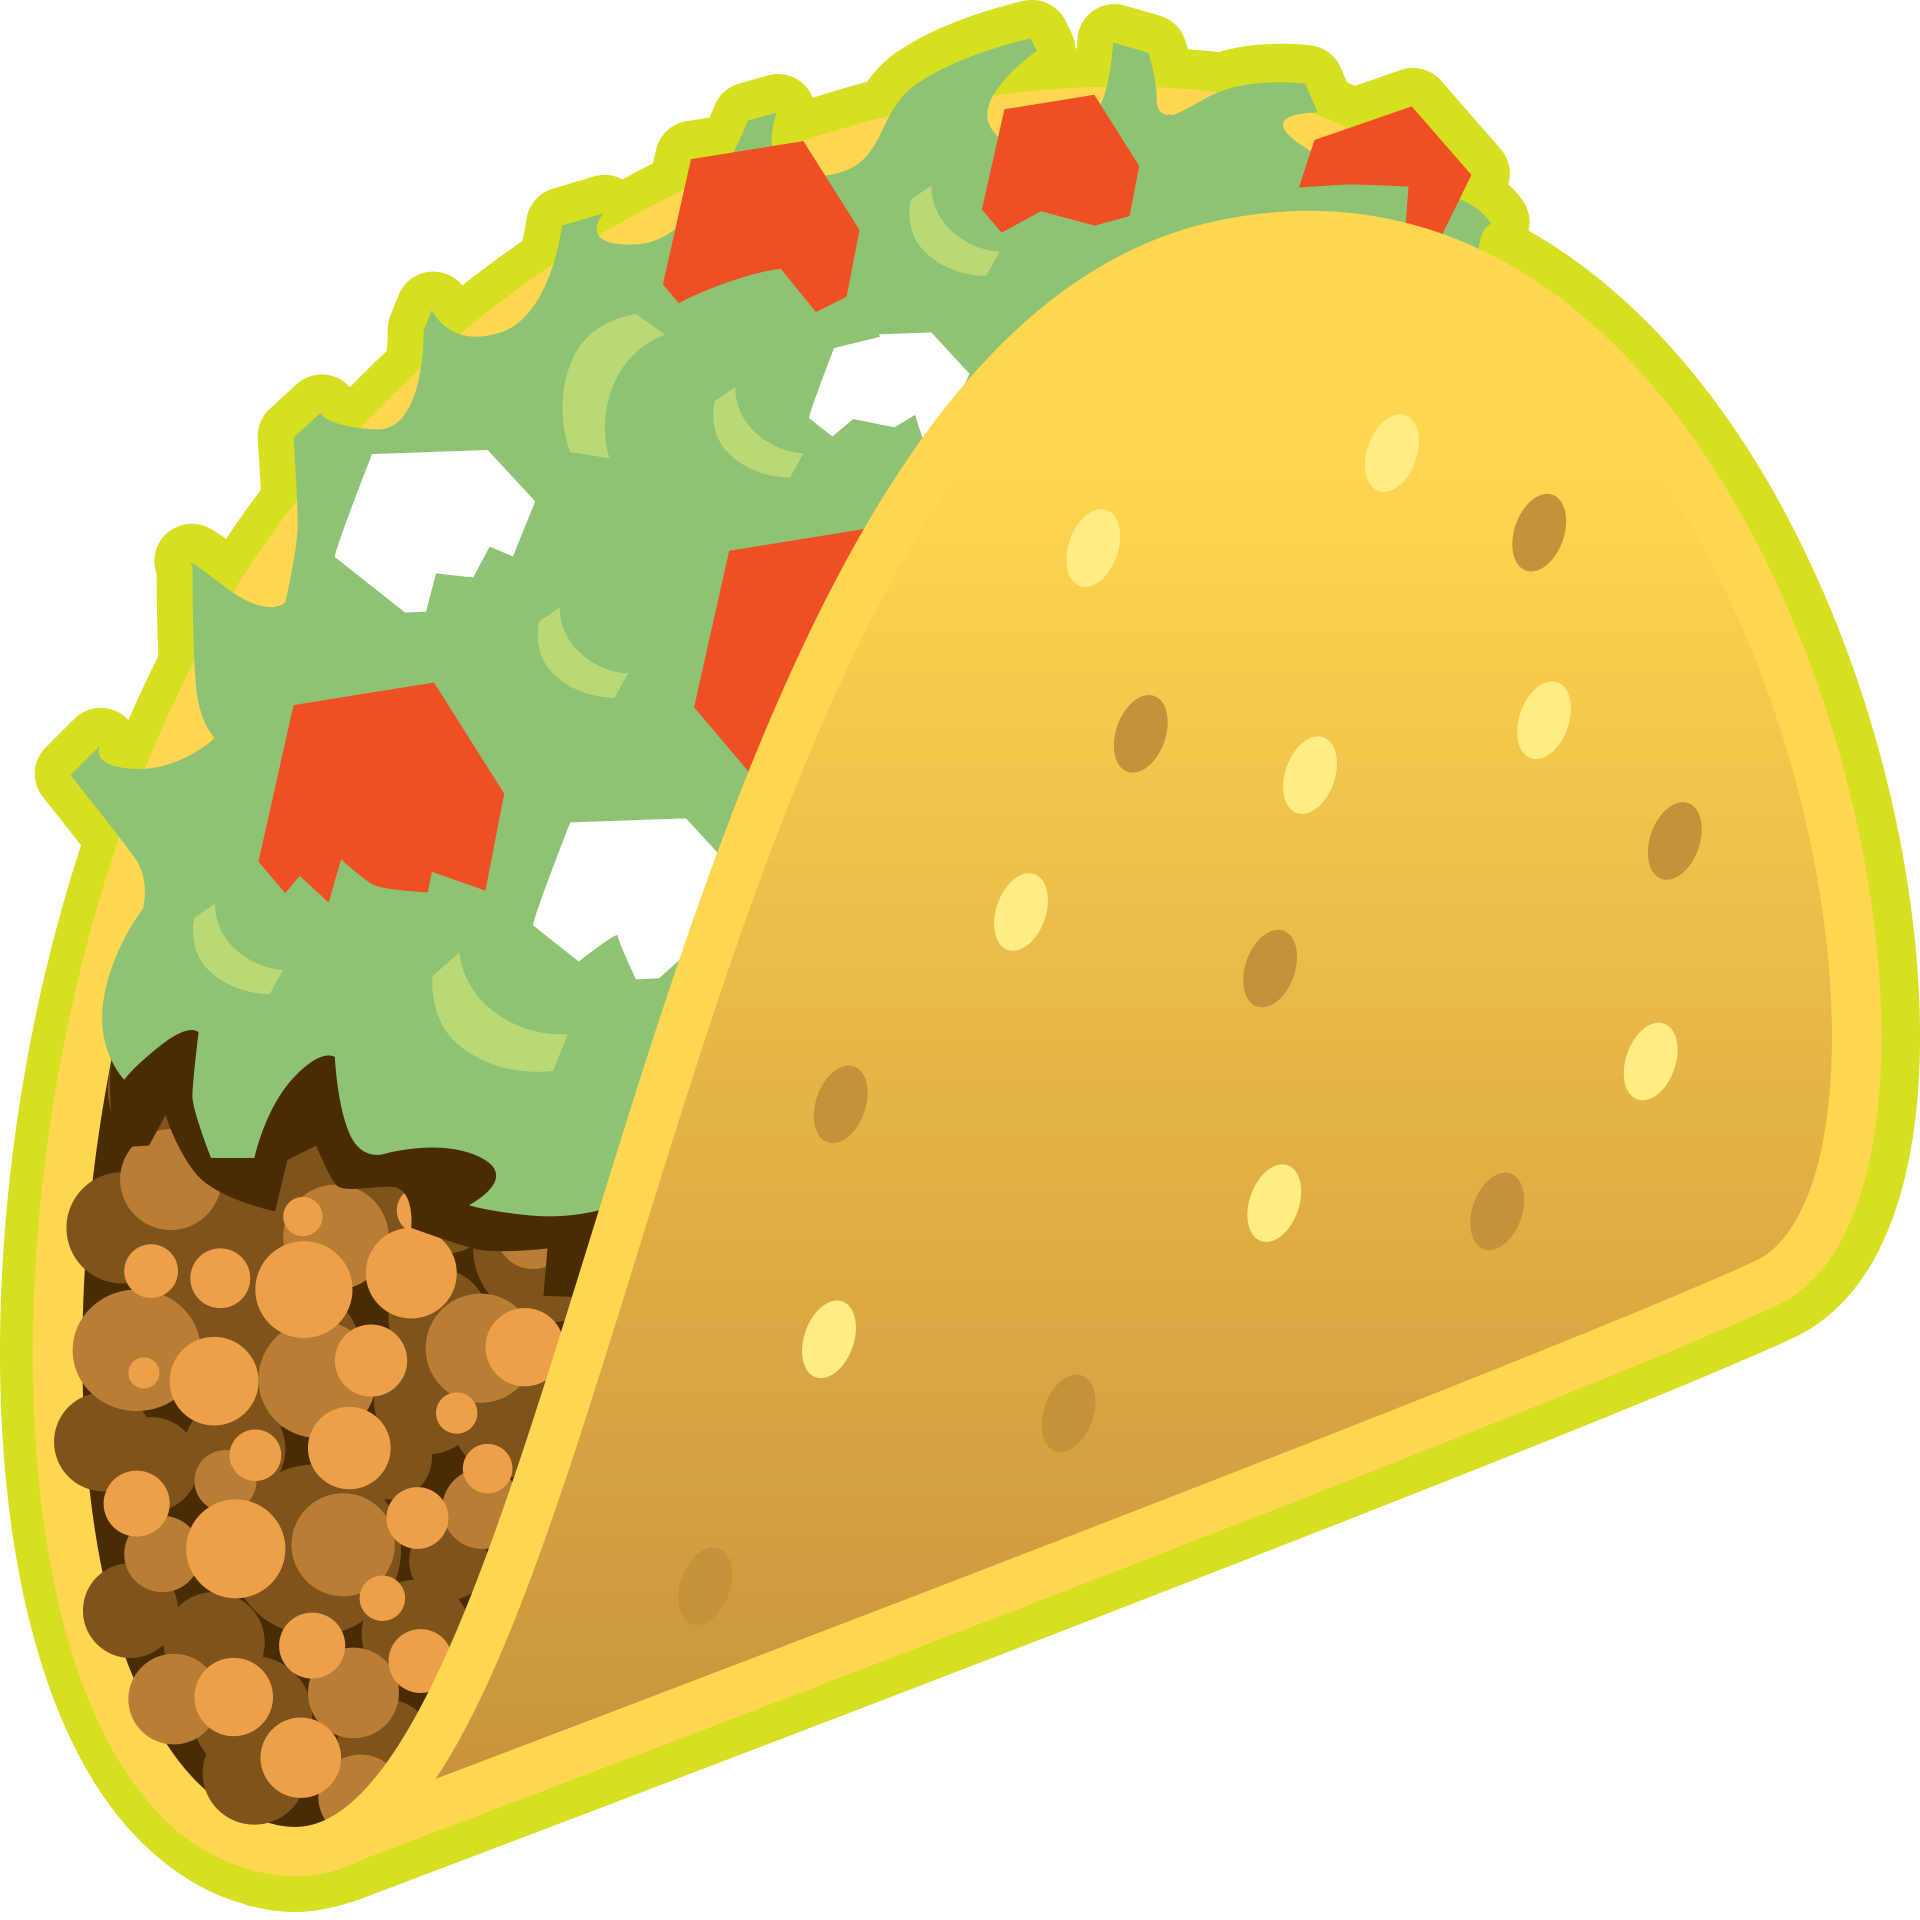 Taco emoji png. The best new has